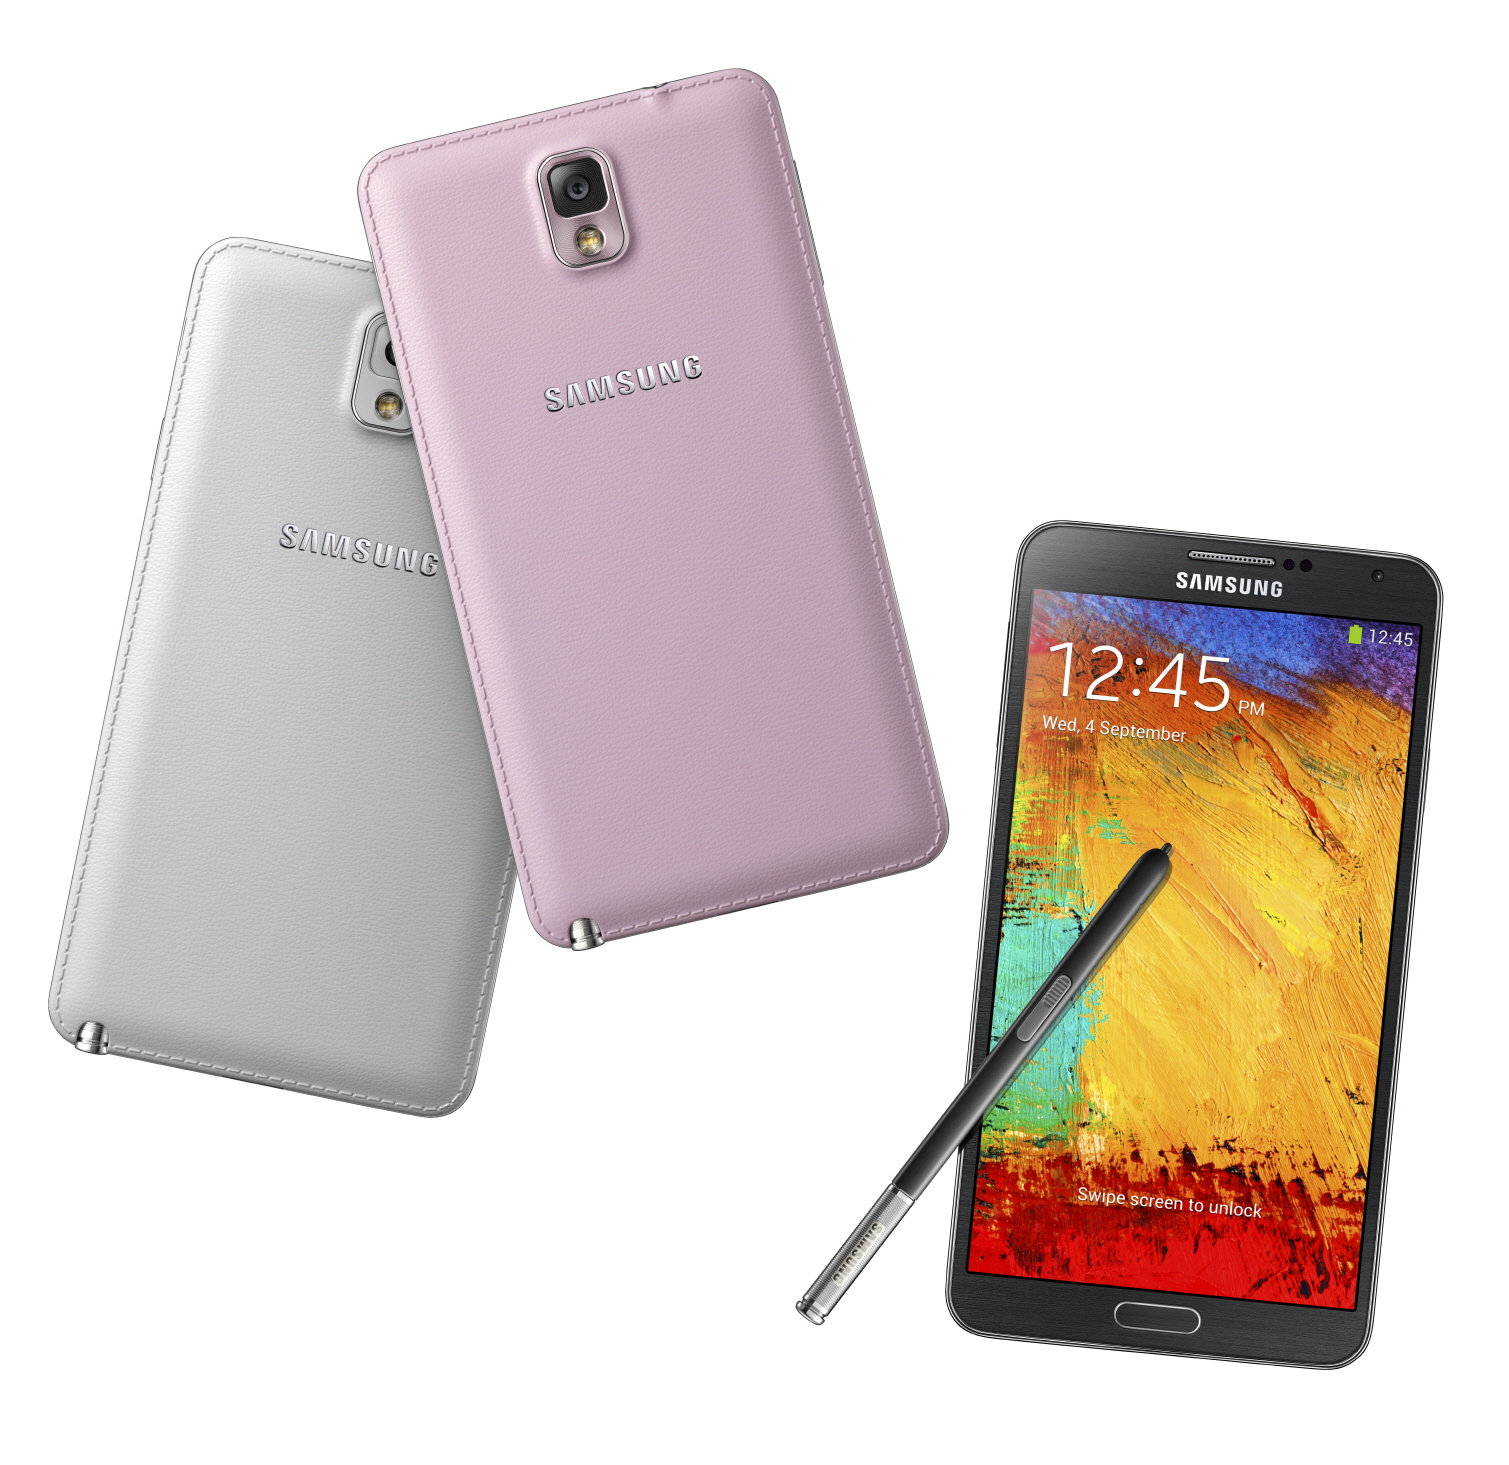 Samsung Galaxy Note 3 Family